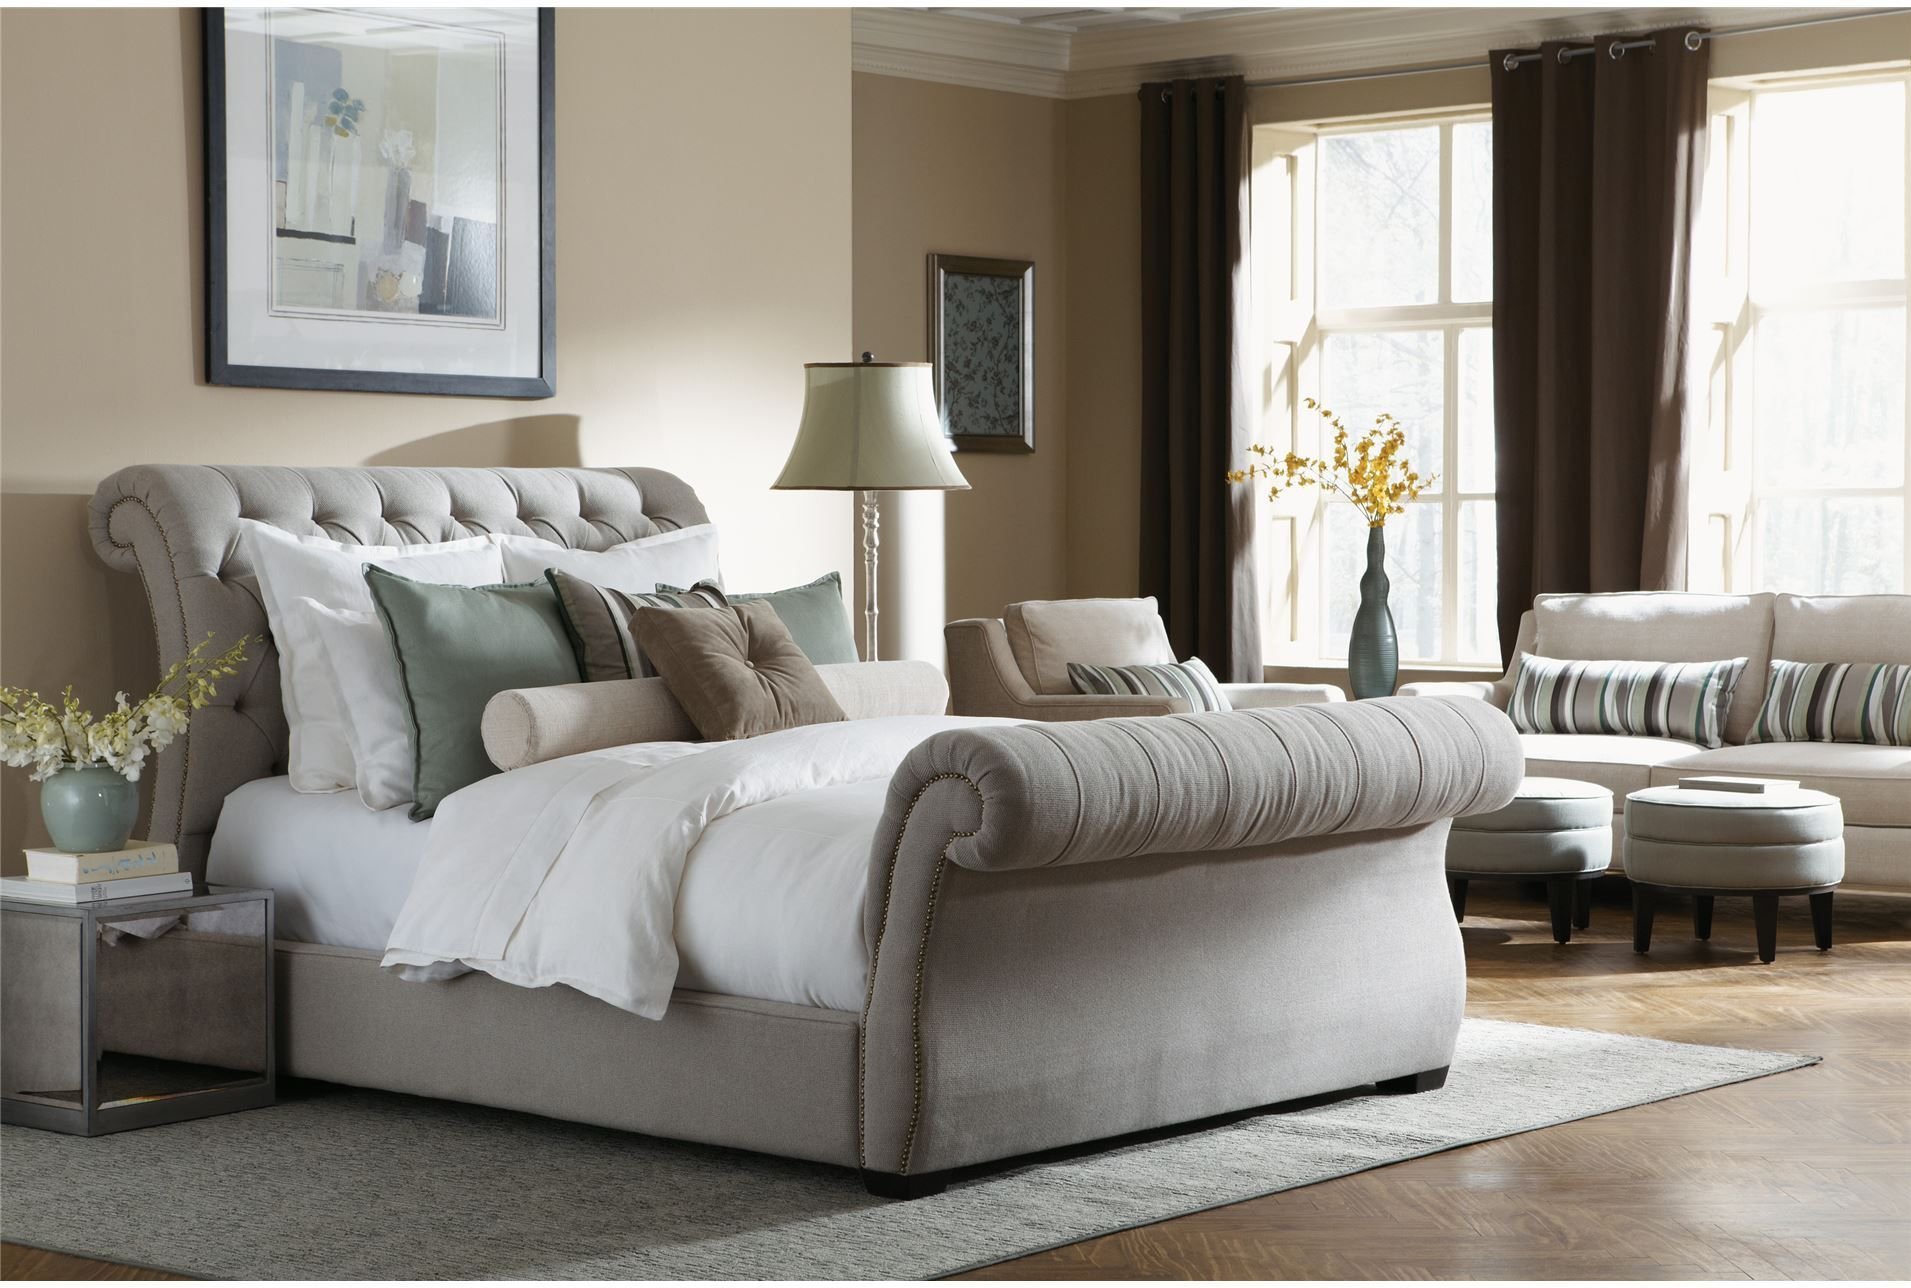 kensington eastern king upholstered sleigh bed - King Padded Bedroom Designs